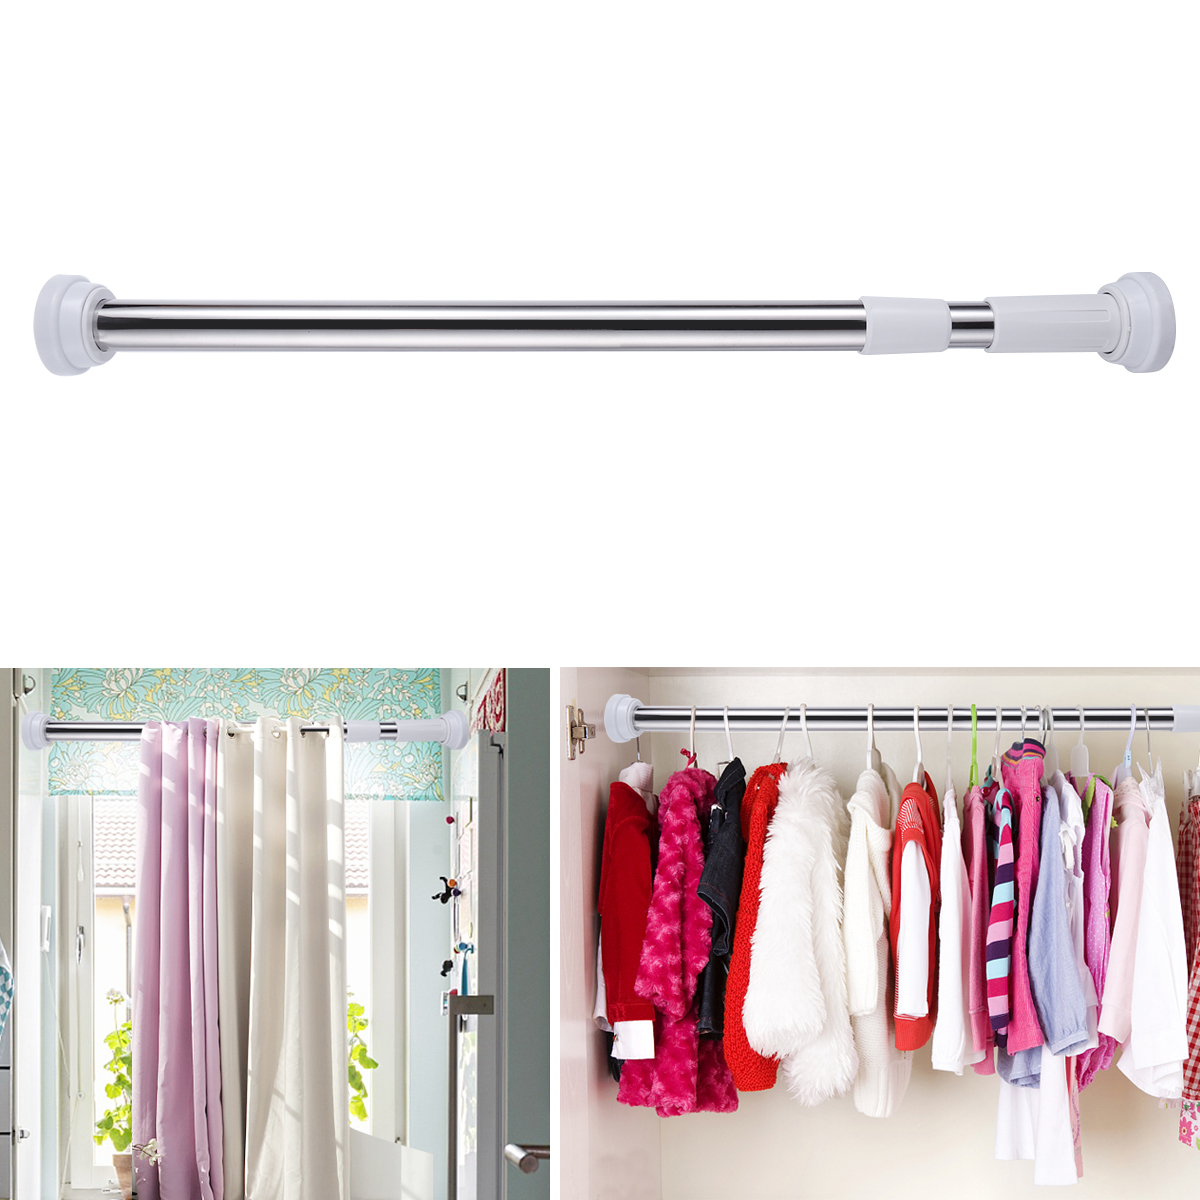 2019 Stainless Steel Bathroom Shower Curtain Rod Adjustable Shower Curtain Tension Rod From Huayama 25 05 Dhgate Com